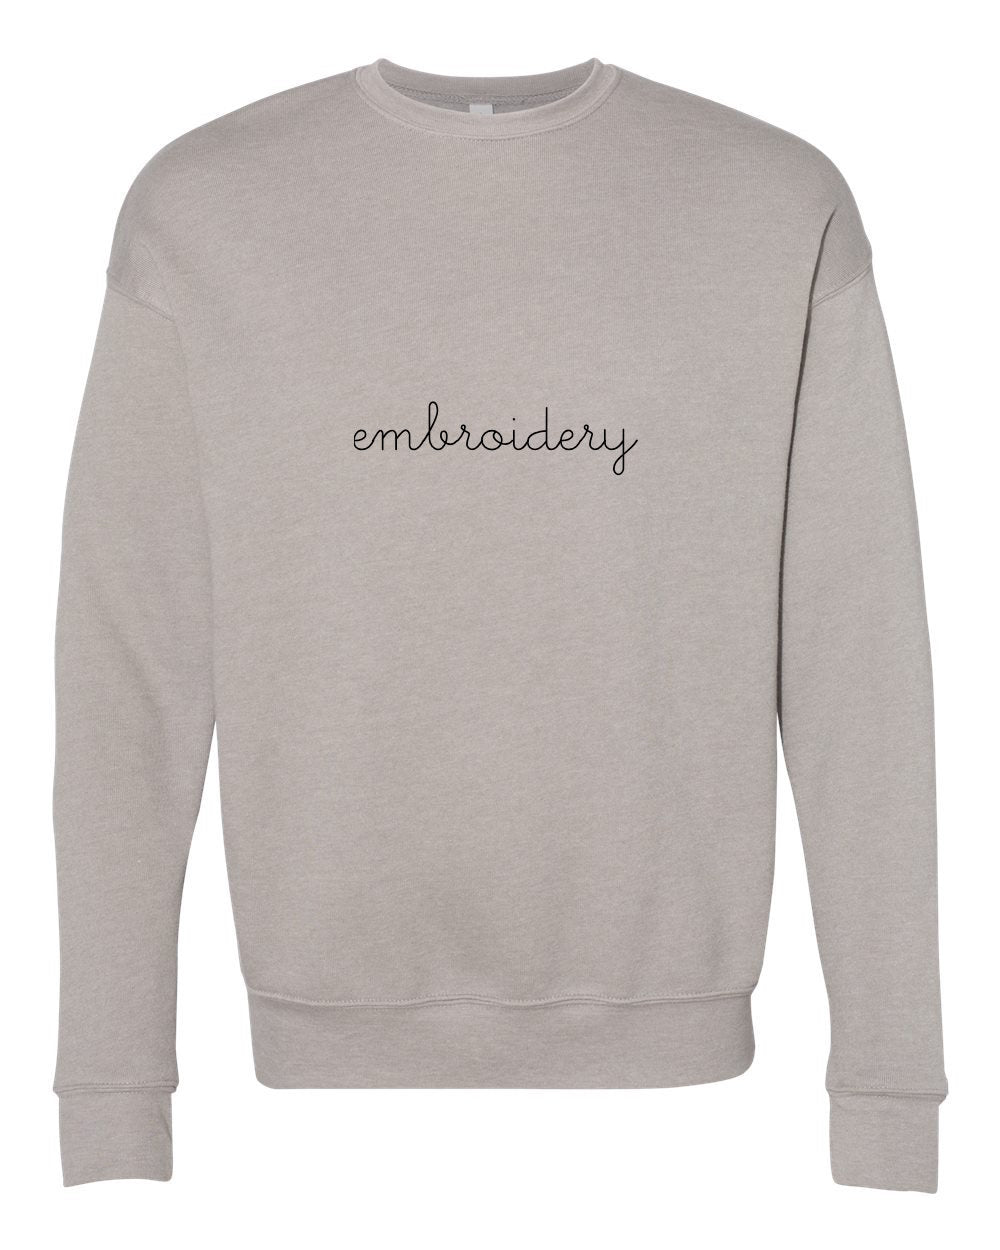 Adult Classic Crewneck Fleece (Unisex) juju + stitch S / Taupe custom personalized script embroidered crewneck fleece